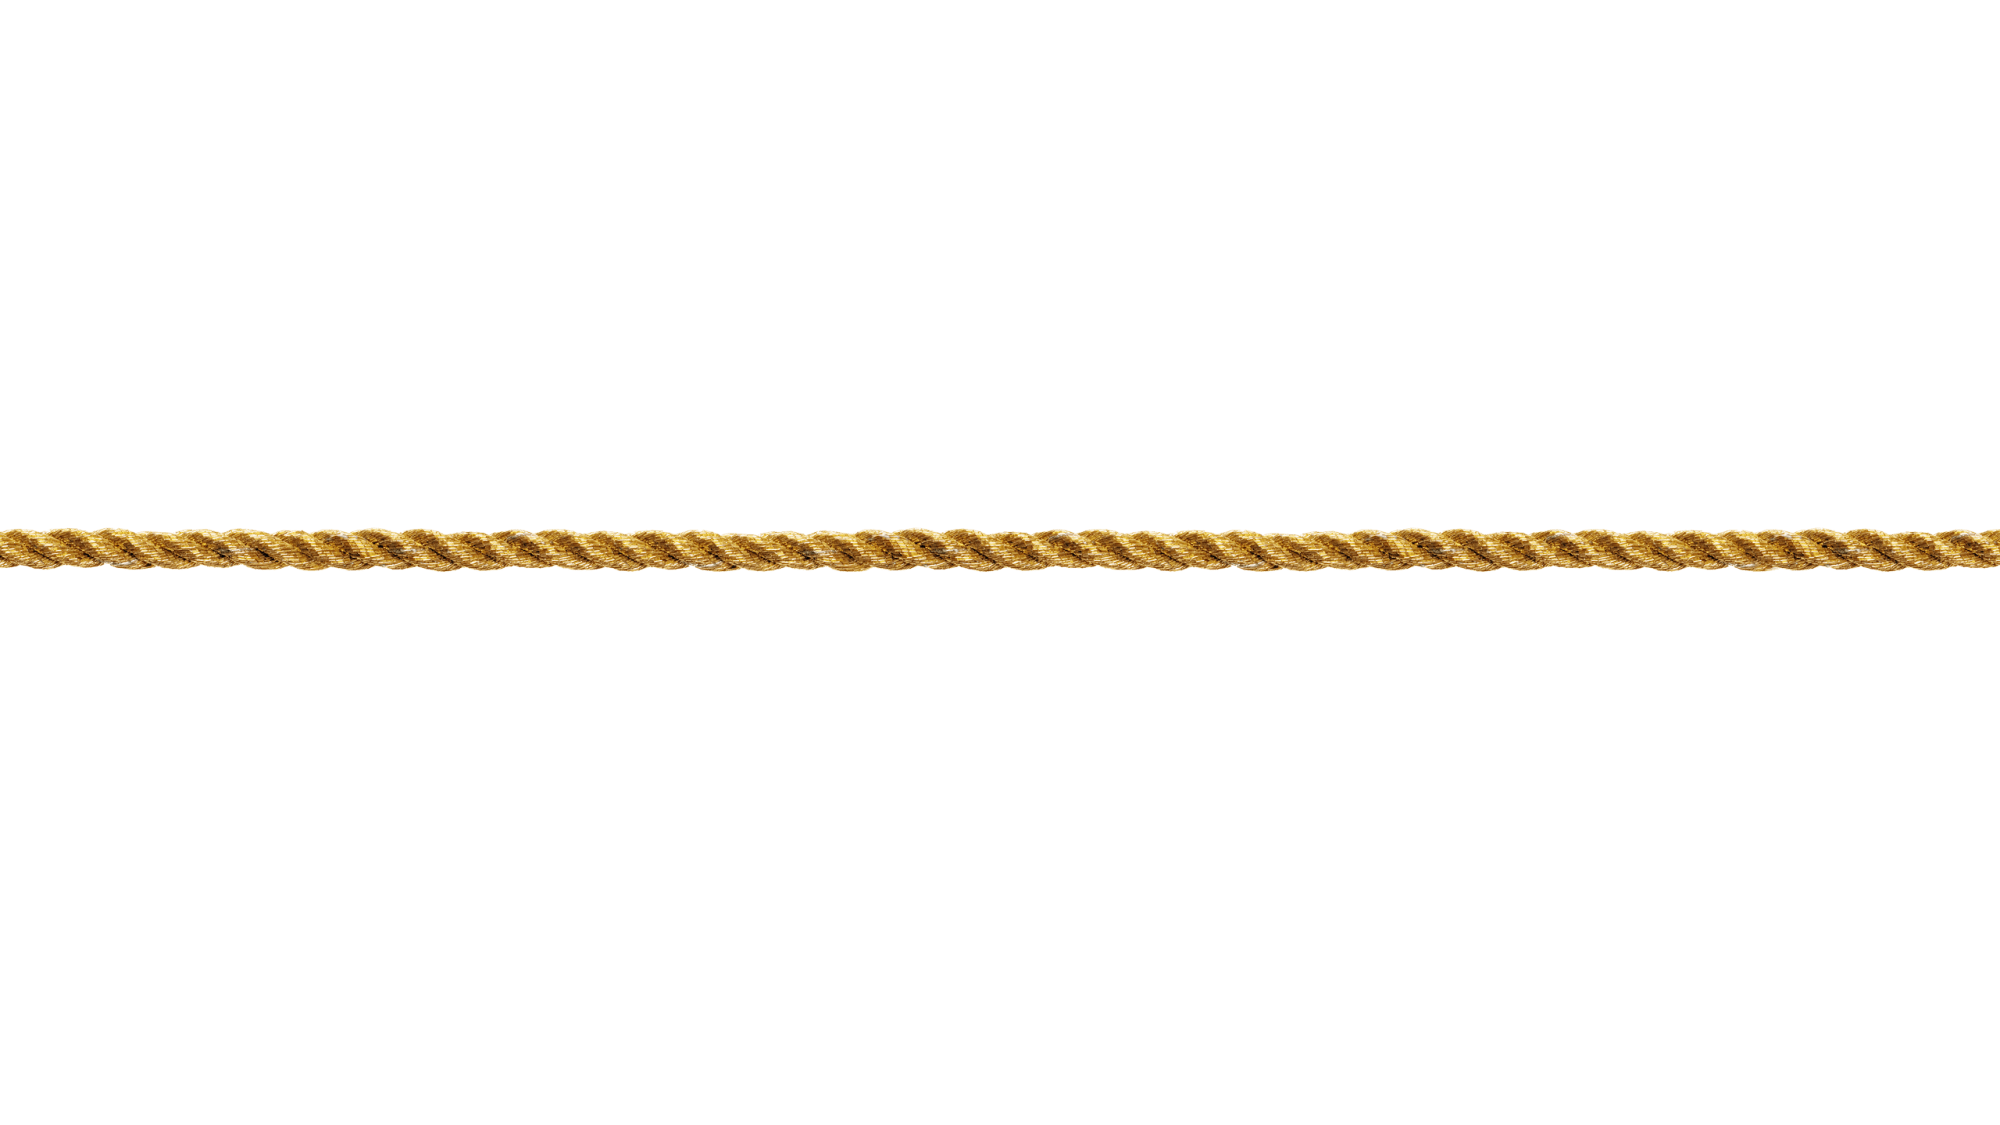 hight resolution of superb rope clipart line pencil and in color